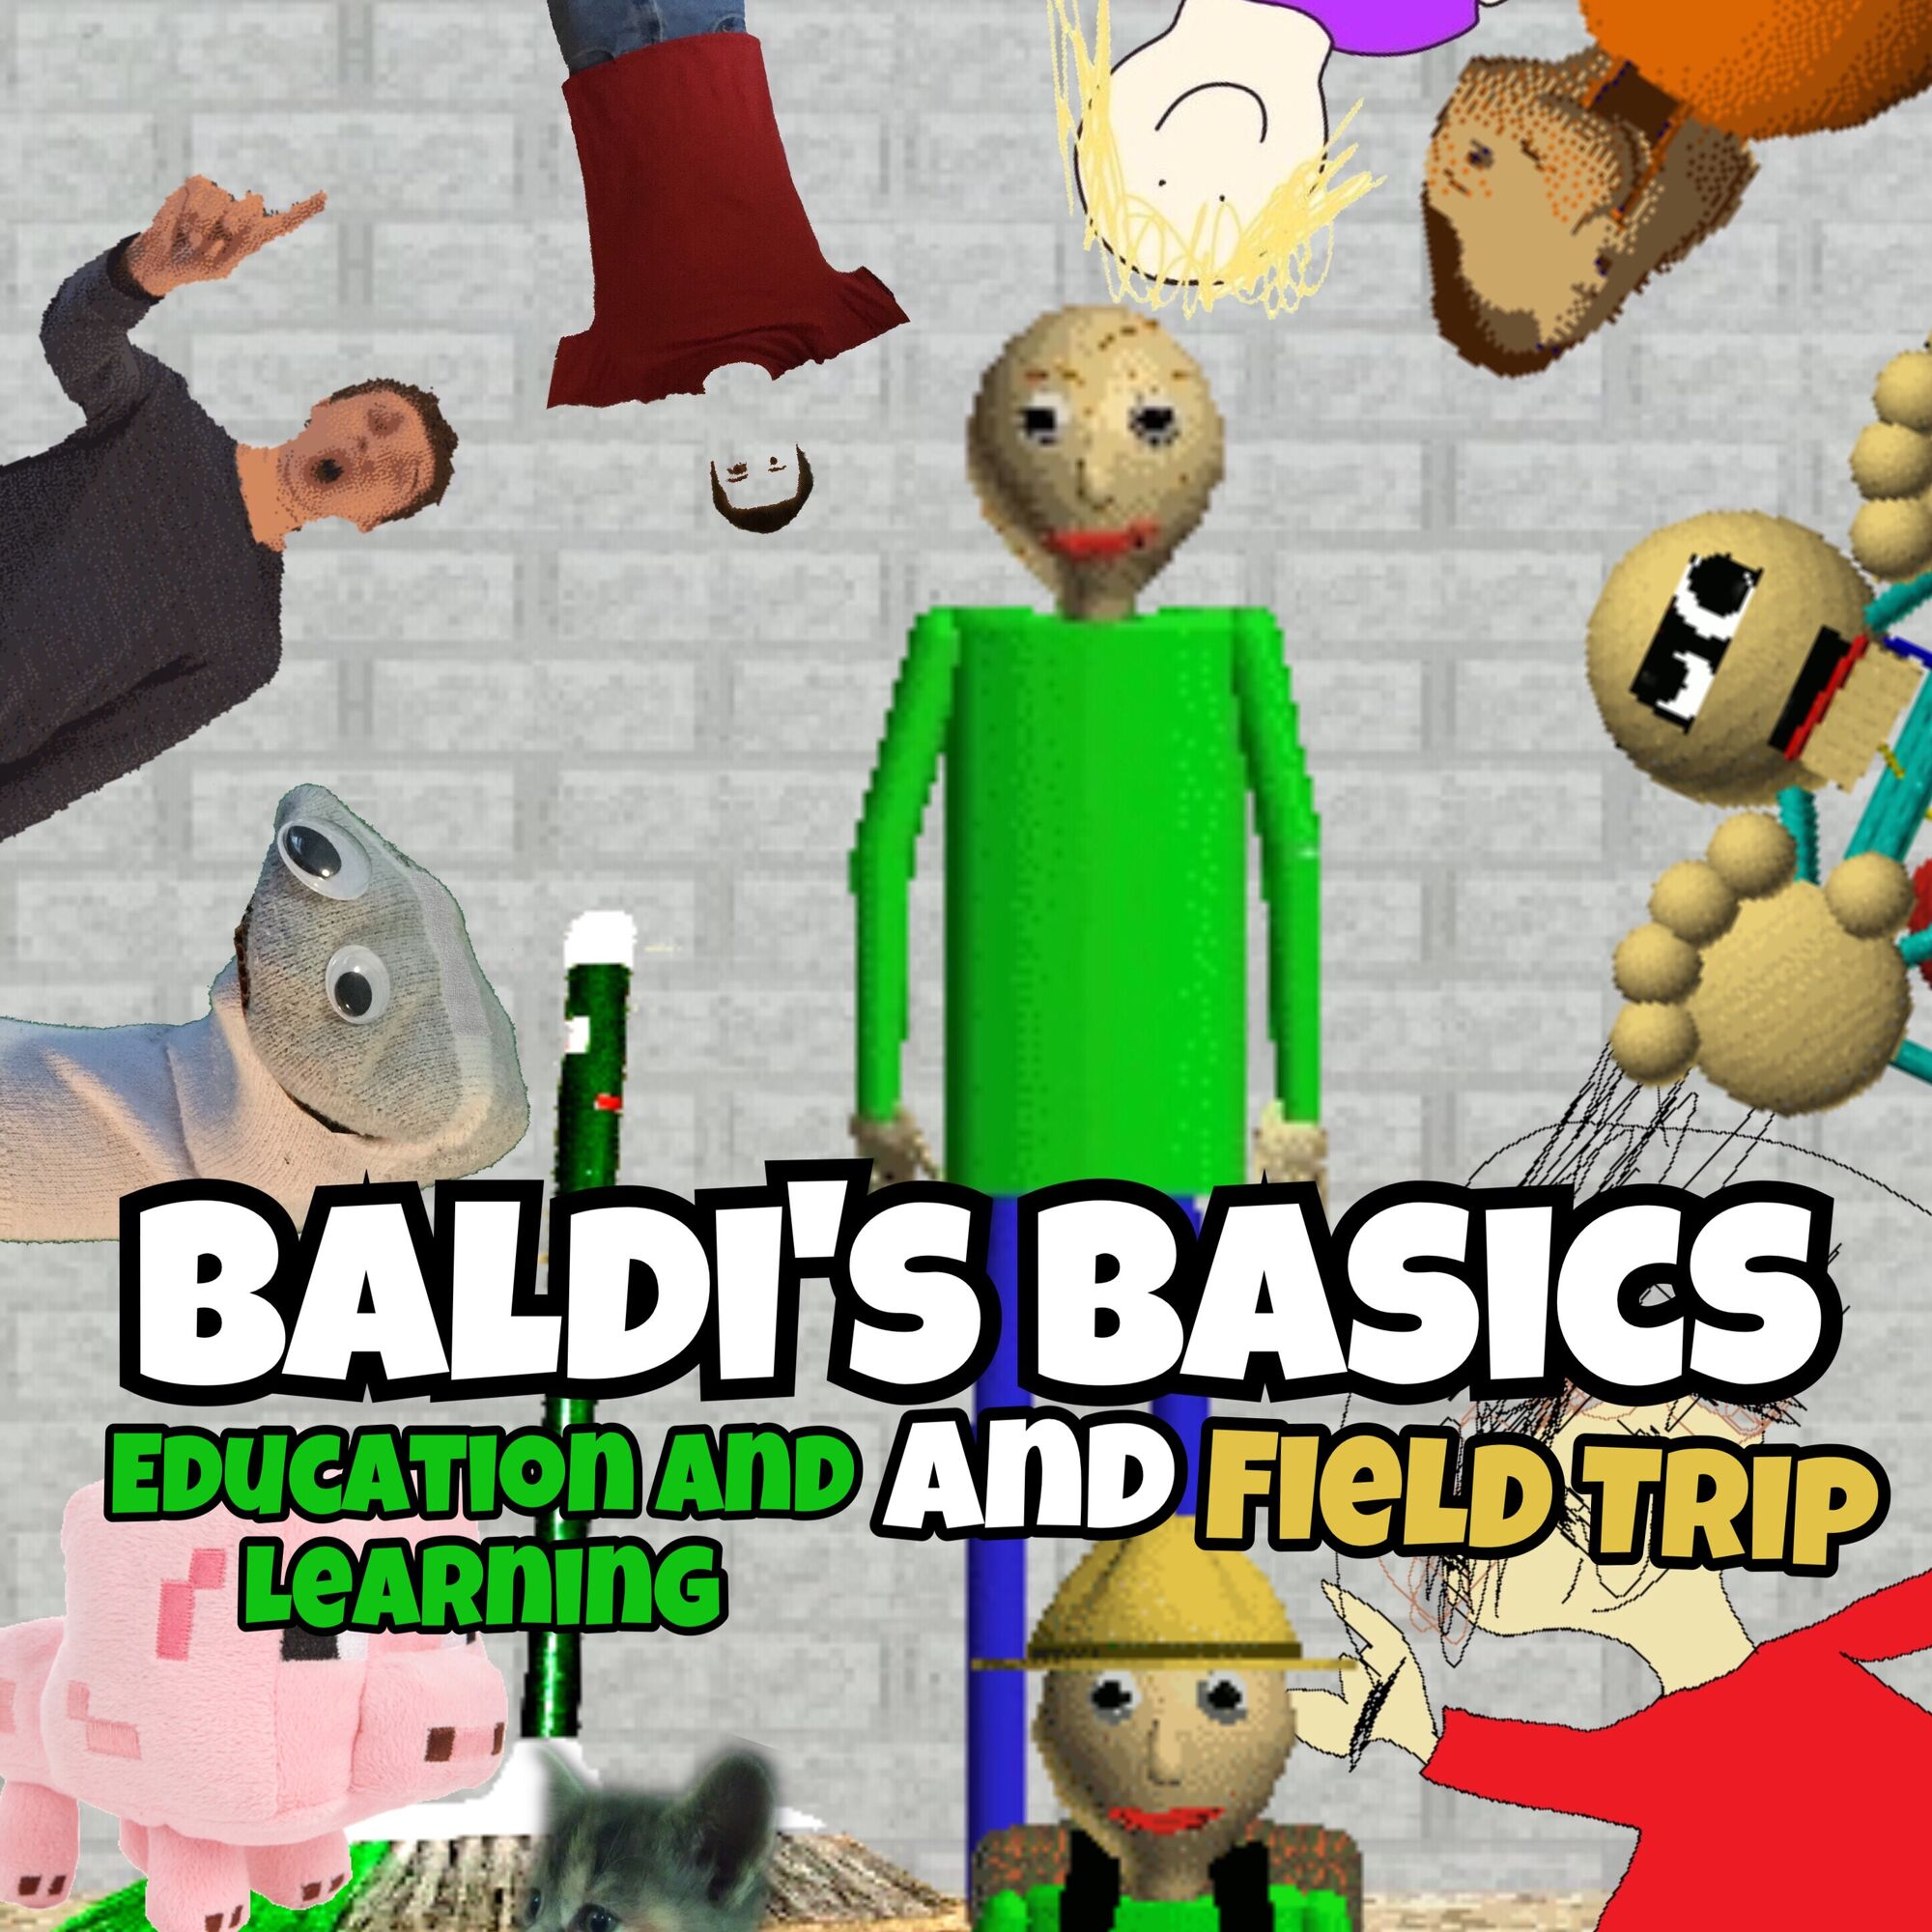 All Codes For Baldis Basics Roblox 2019 Code For Baldi Basic On Roblox Free Working Rich Roblox Account 2019 Free